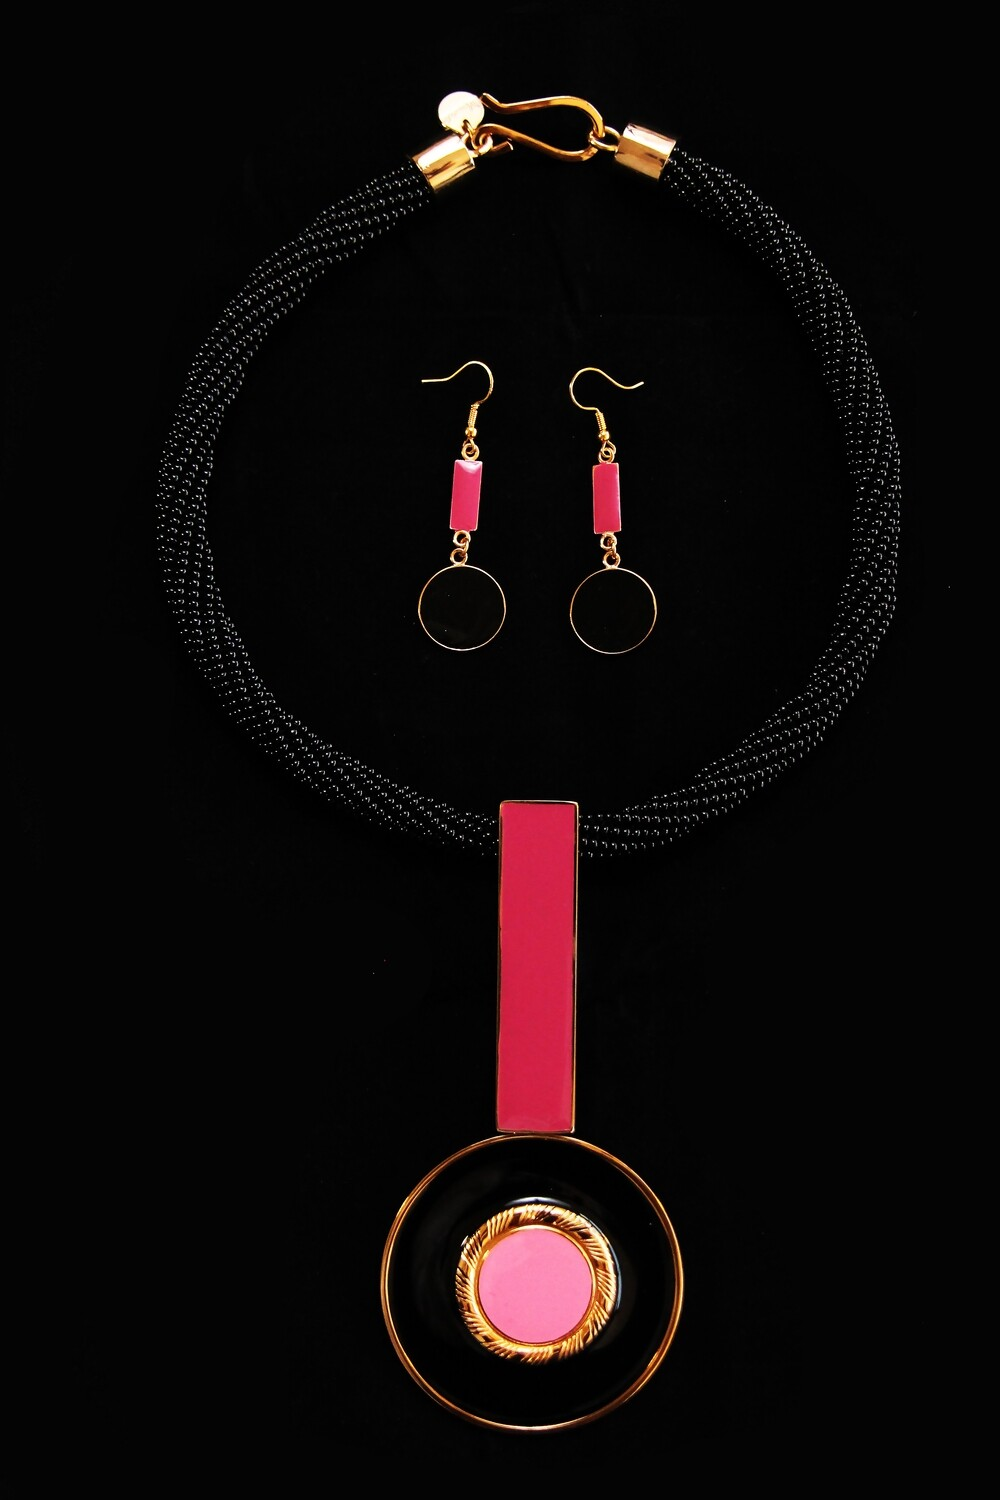 House of Mandela Art Deco Inspired Necklace with Matching Earrings